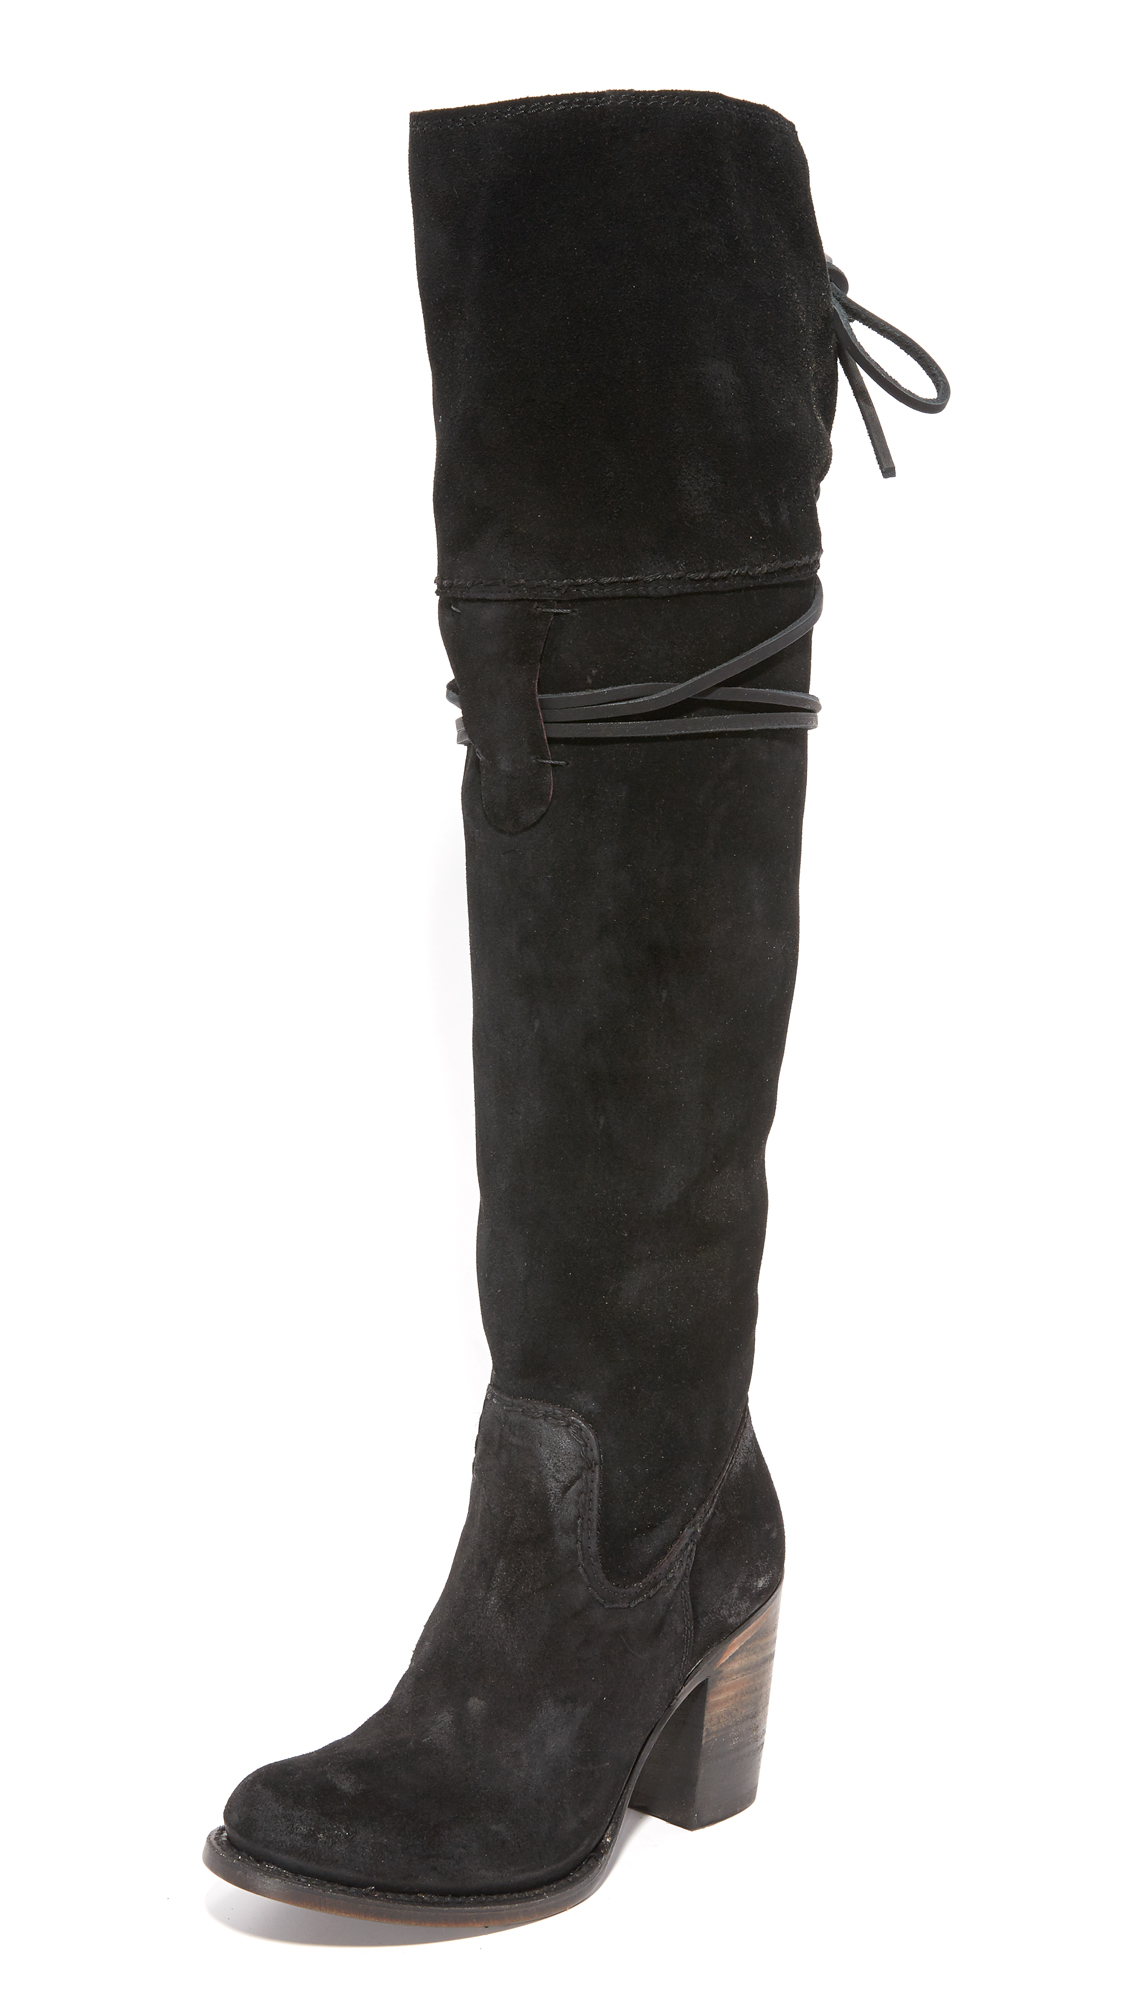 Freebird By Steven Brock Over The Knee Boots - Black